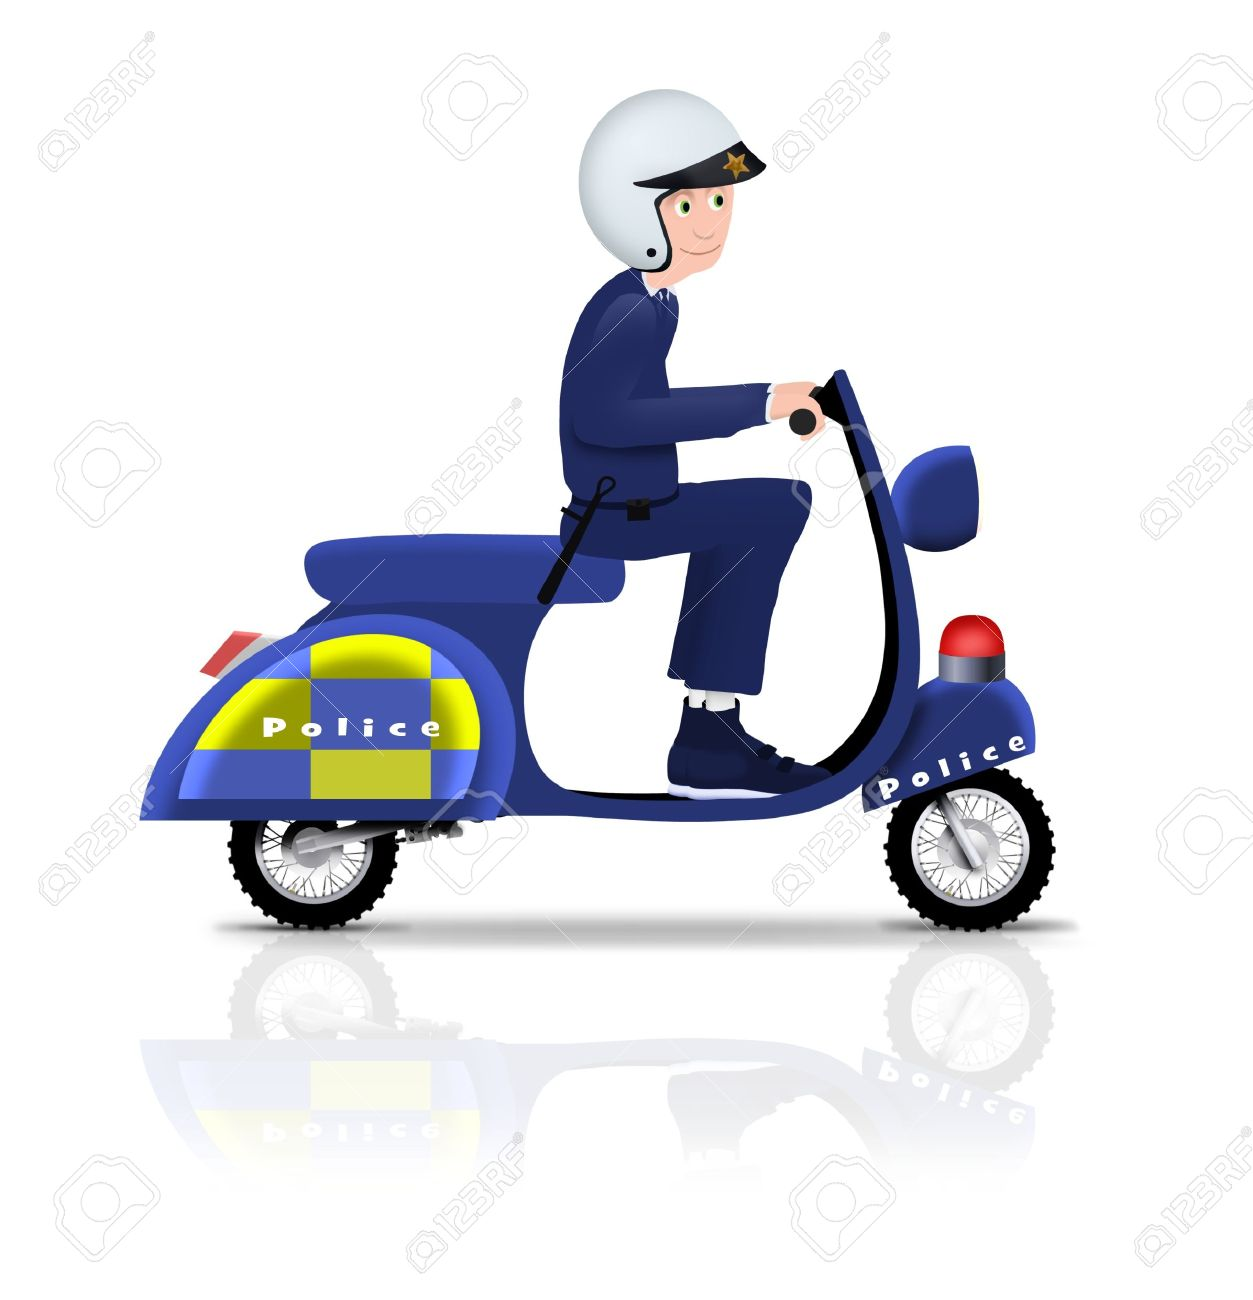 Illustrated policeman riding a scooter Stock Photo - 7937276